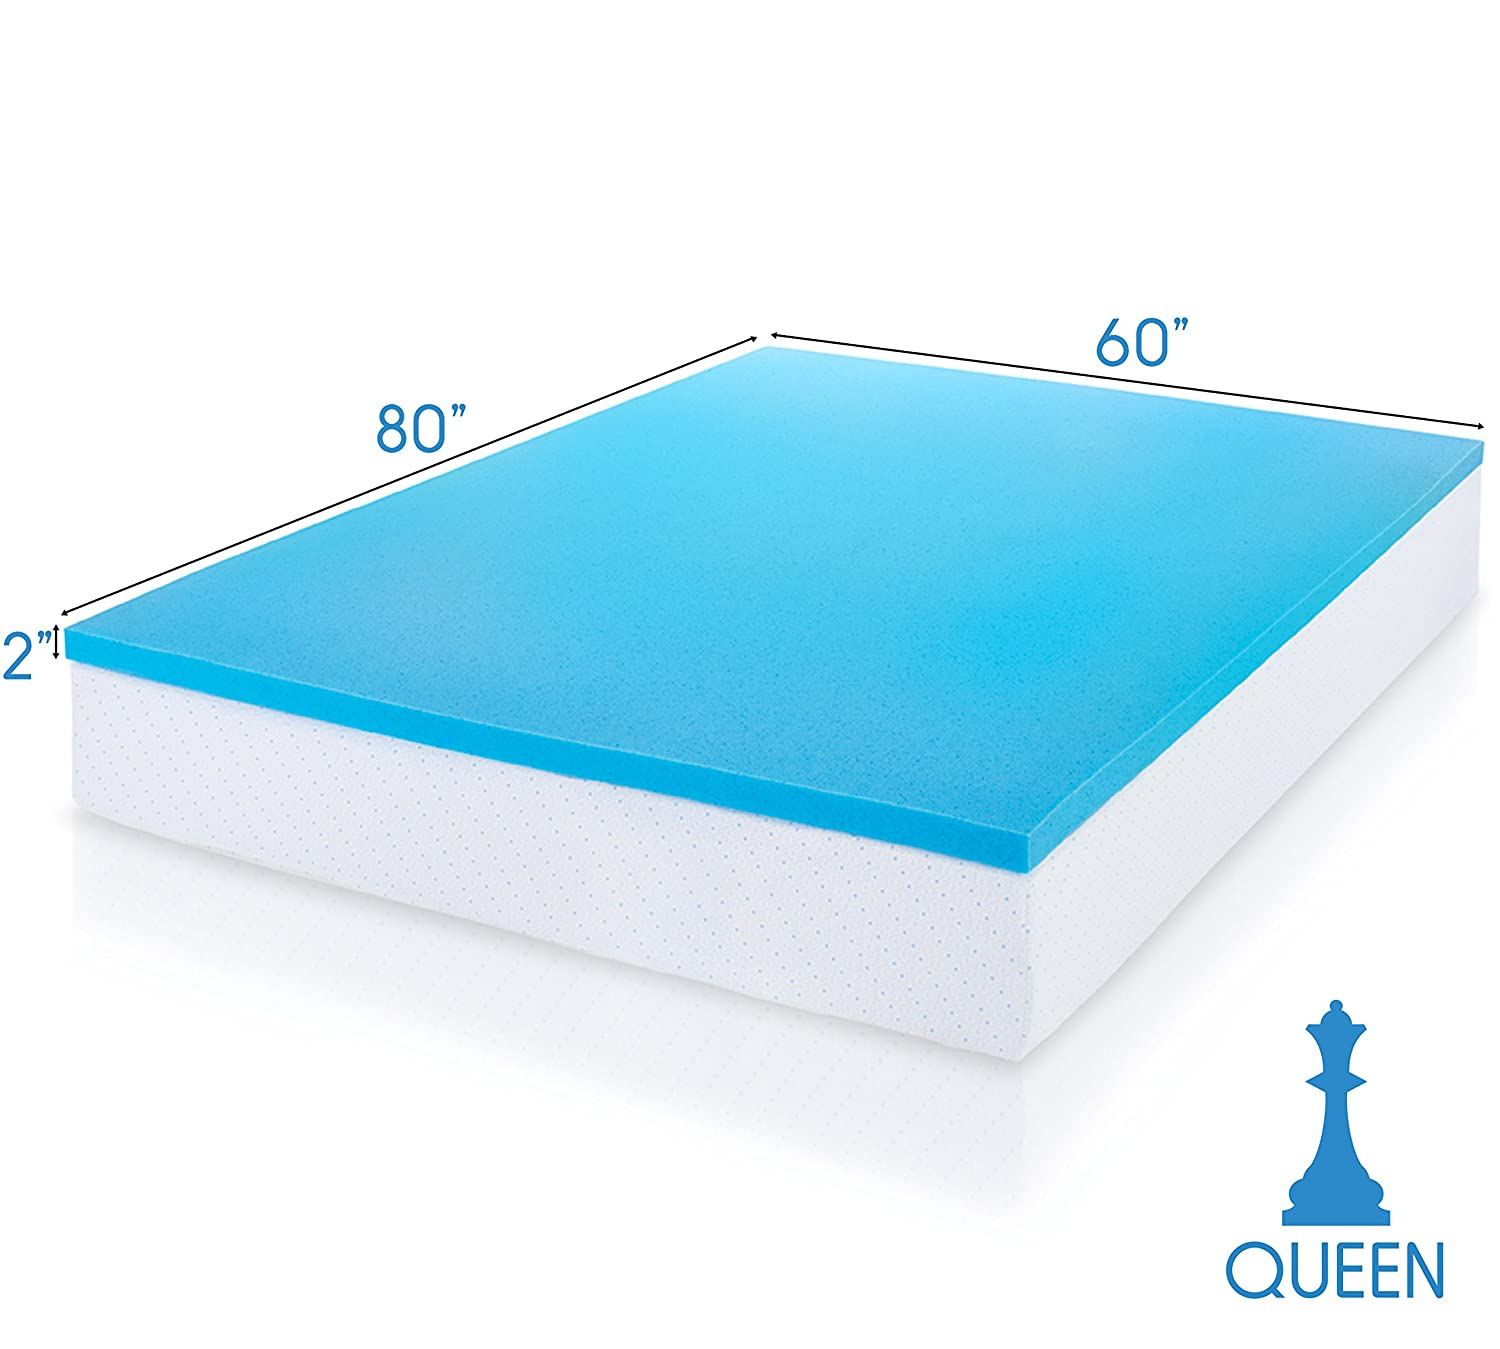 Density 2-Inch Gel Infused Memory Foam Queen Mattress Topper: Home & Kitchen - Amazon.com: ViscoSoft 3 Lbs. Density 2-Inch Gel Infused Memory